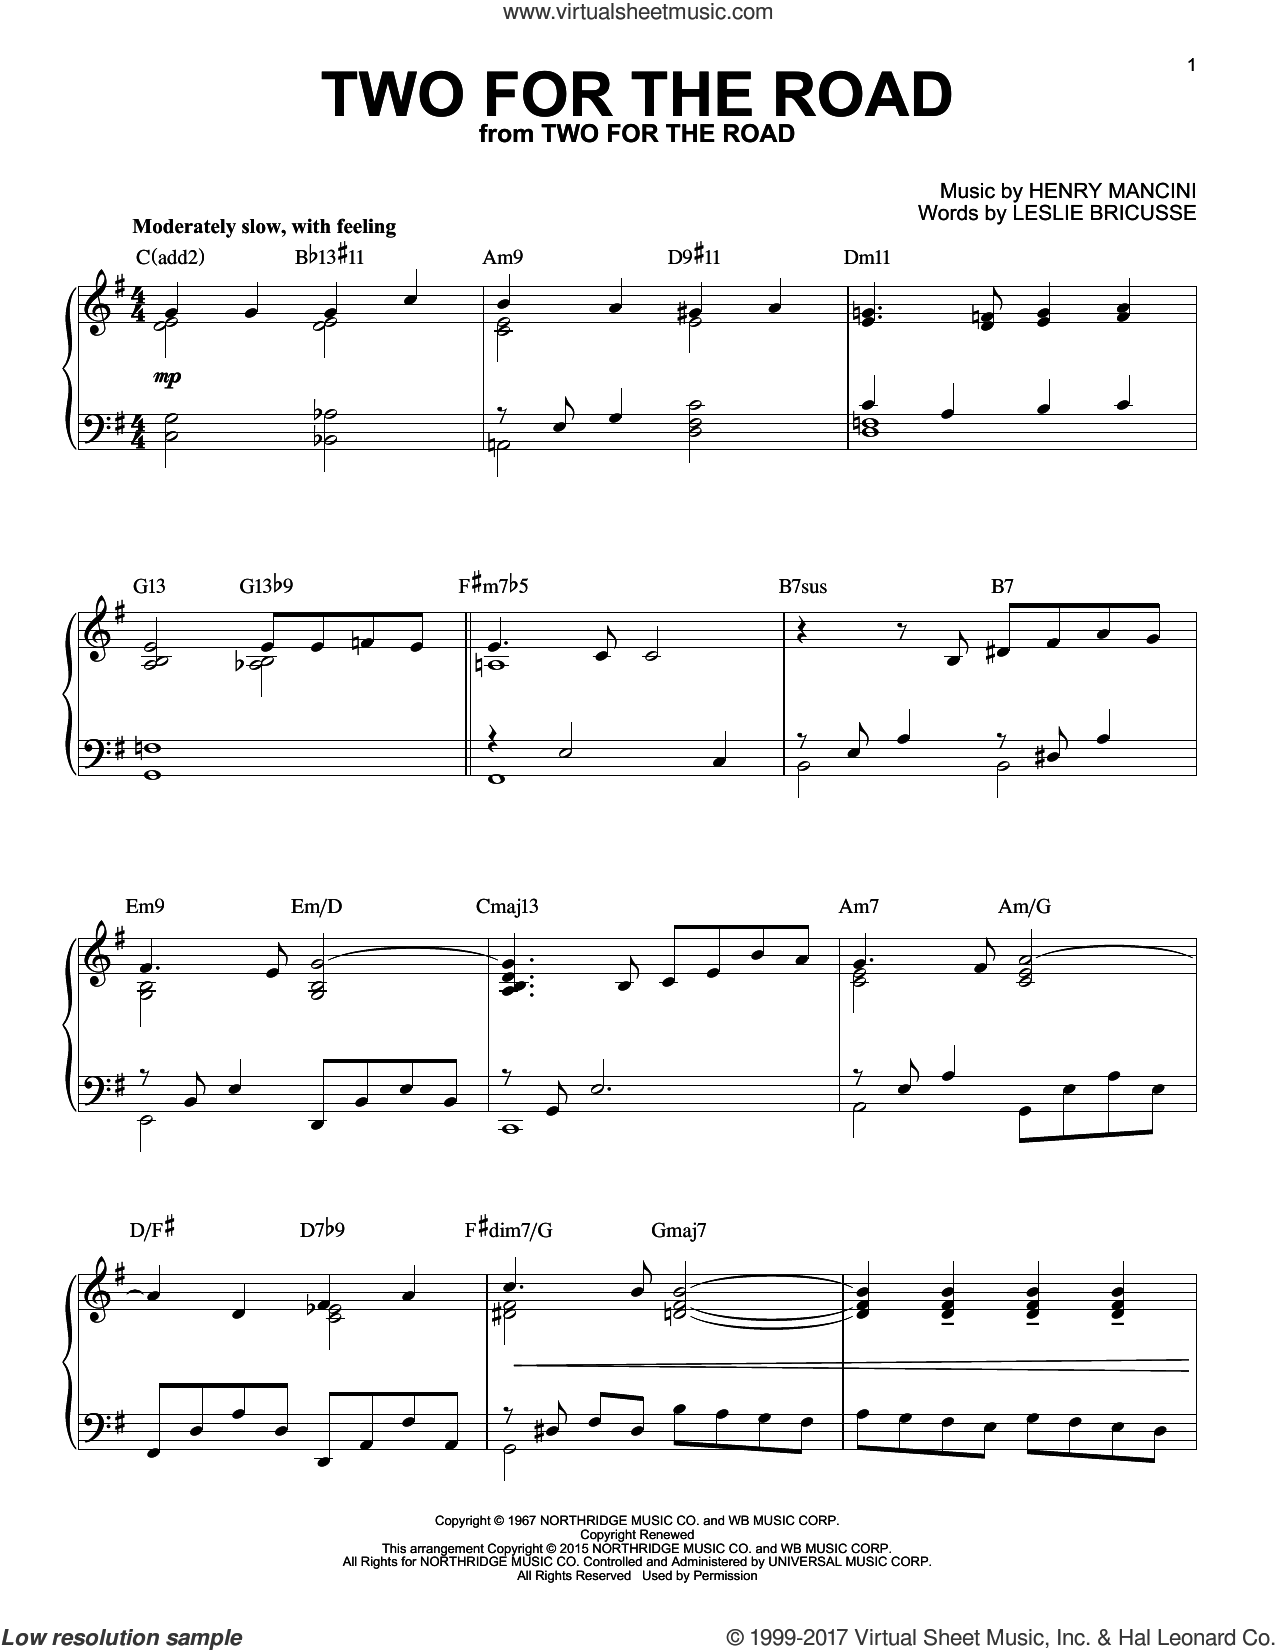 Two For The Road [Jazz version] (arr. Brent Edstrom) sheet music for piano solo by Henry Mancini and Leslie Bricusse, intermediate skill level